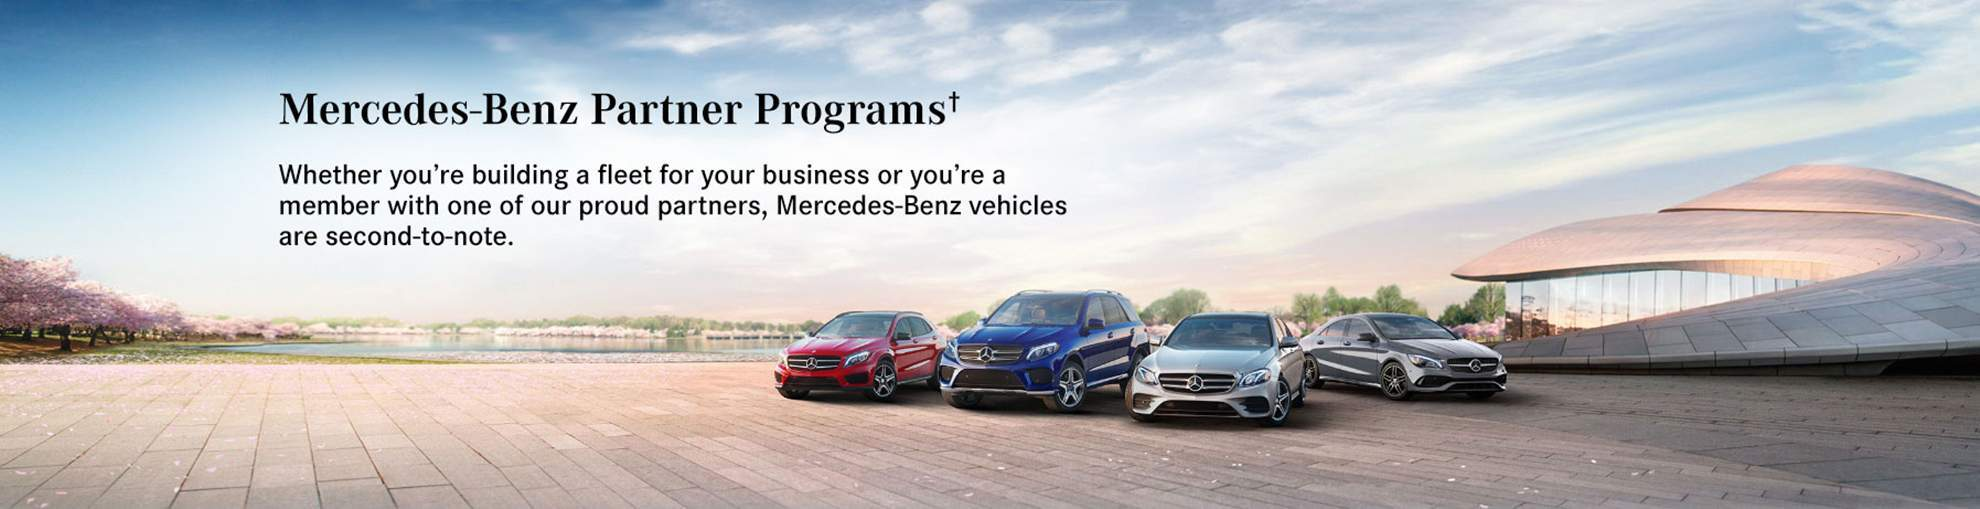 Four Mercedes-Benz Vehicles in Advertisements